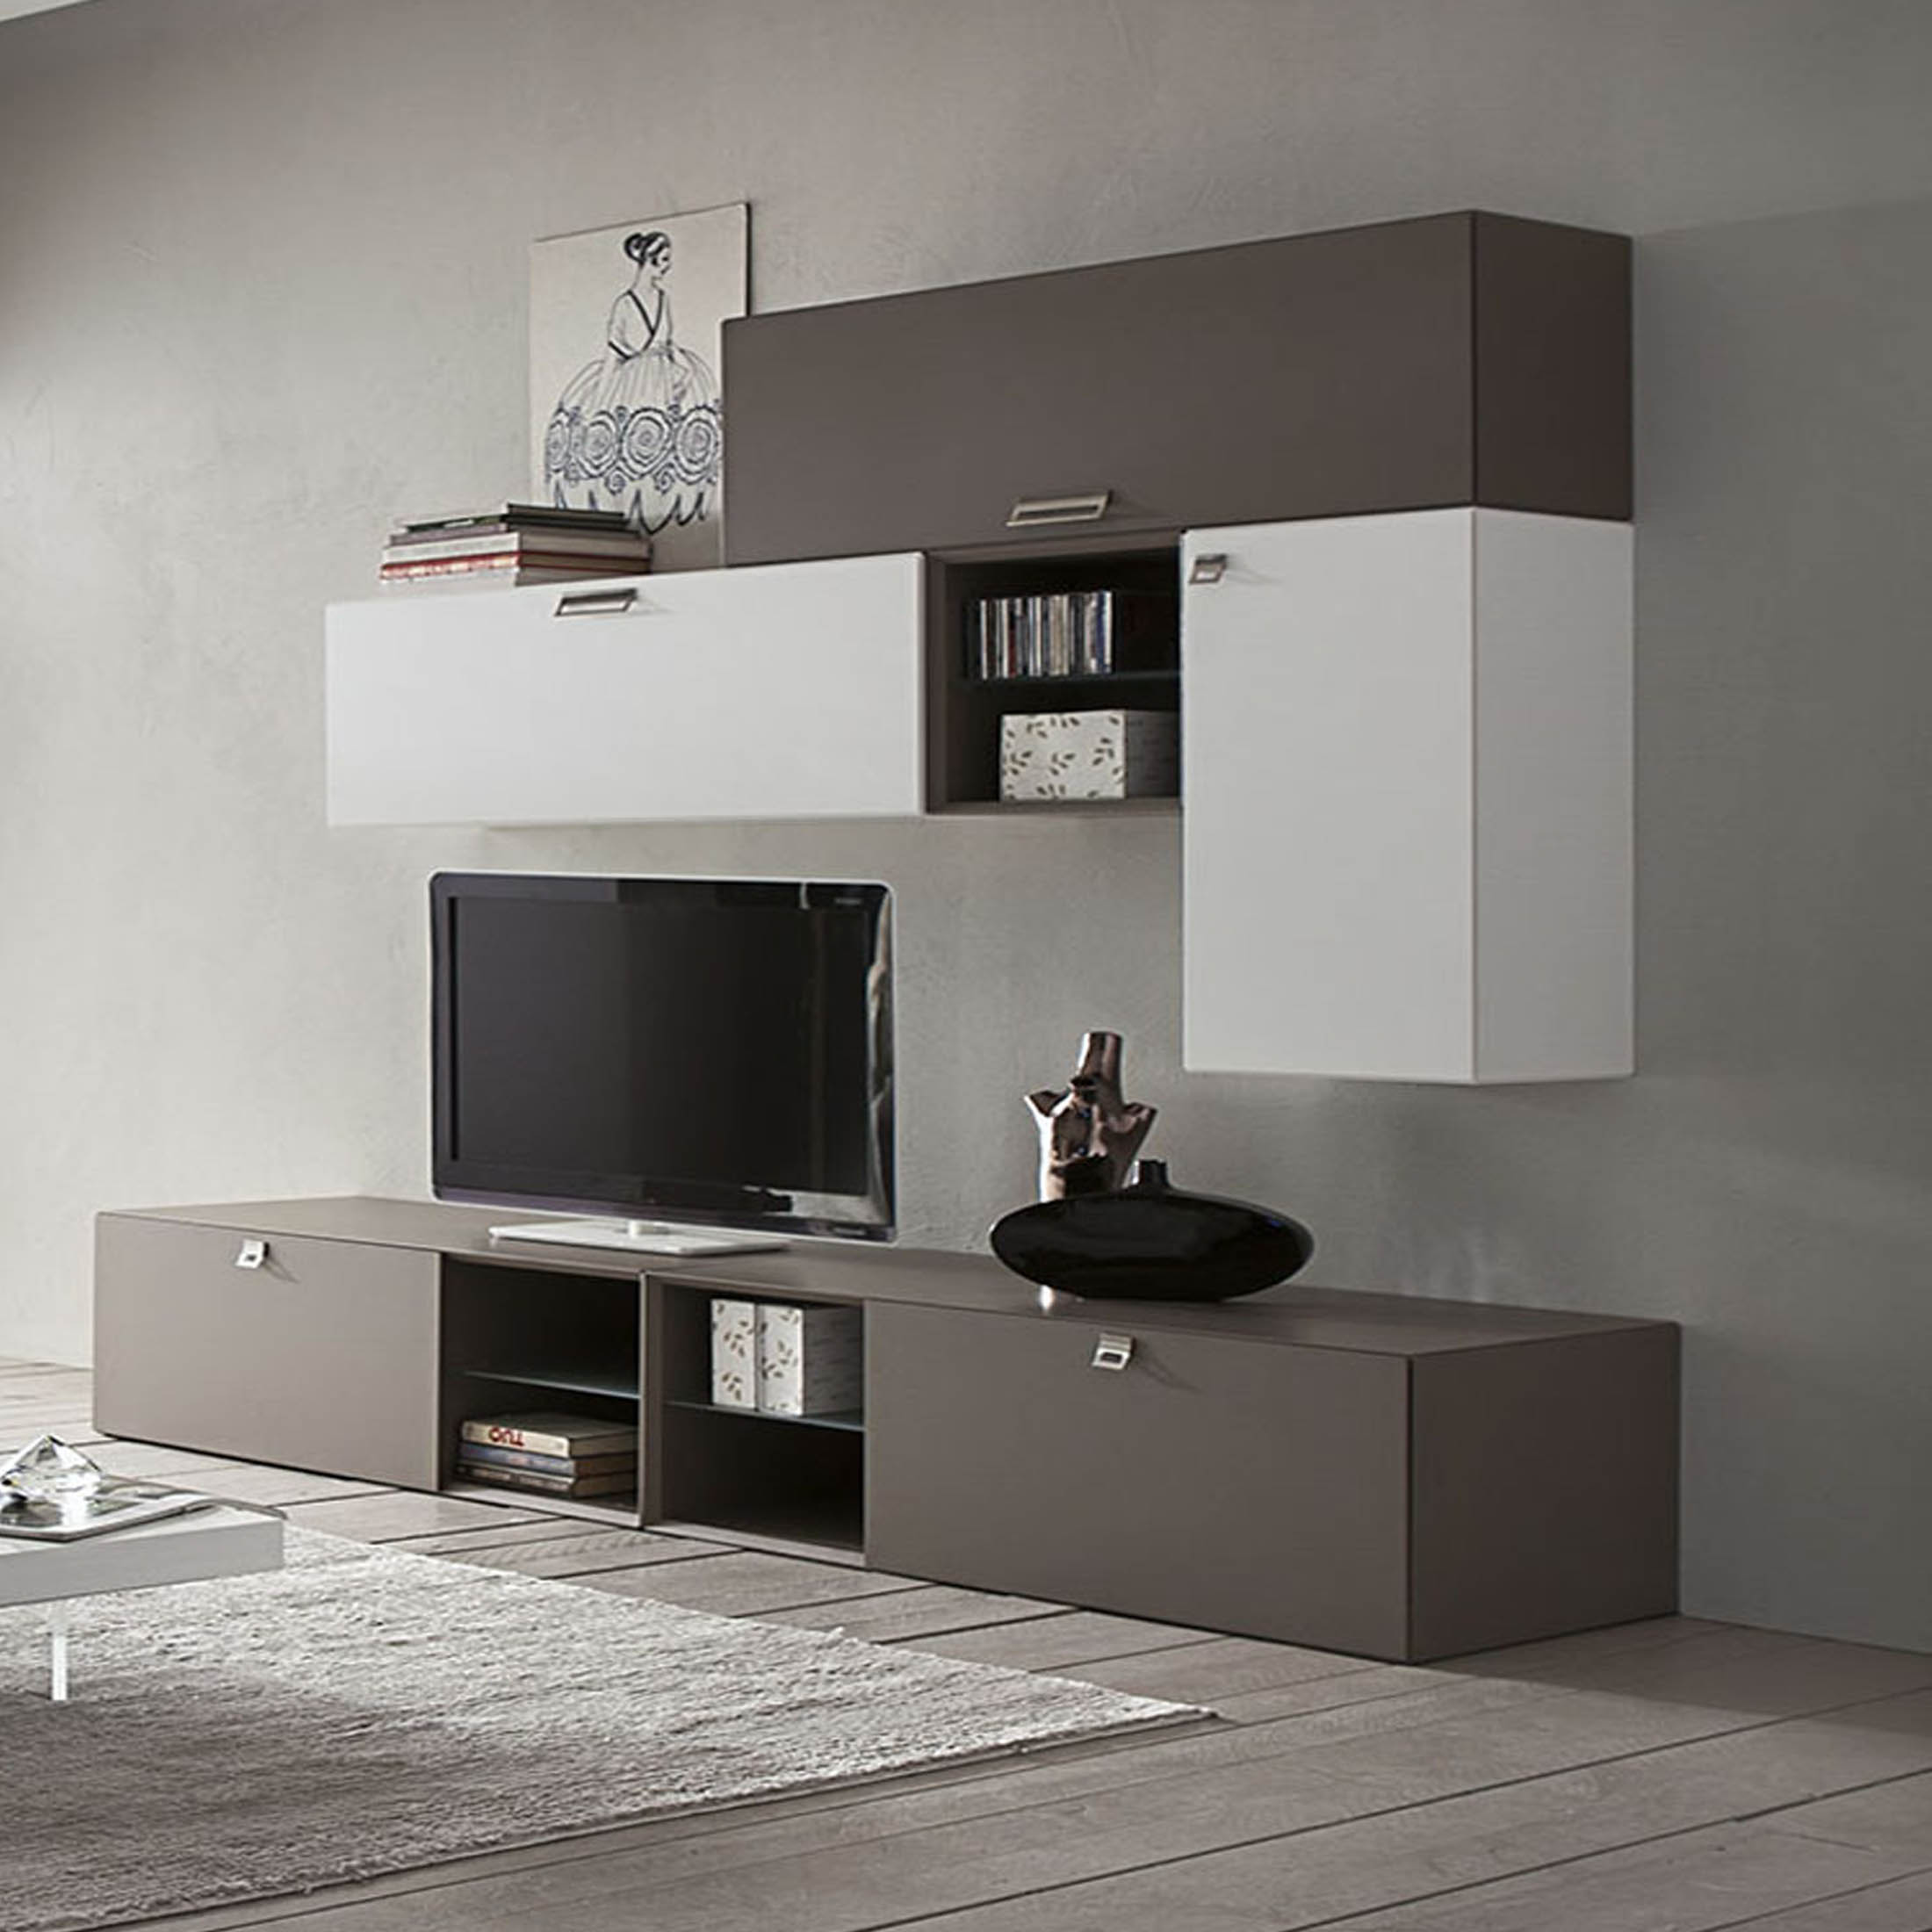 ... Italian Modern Furniture Lego Wall Mounted Bookcase Tv  ...